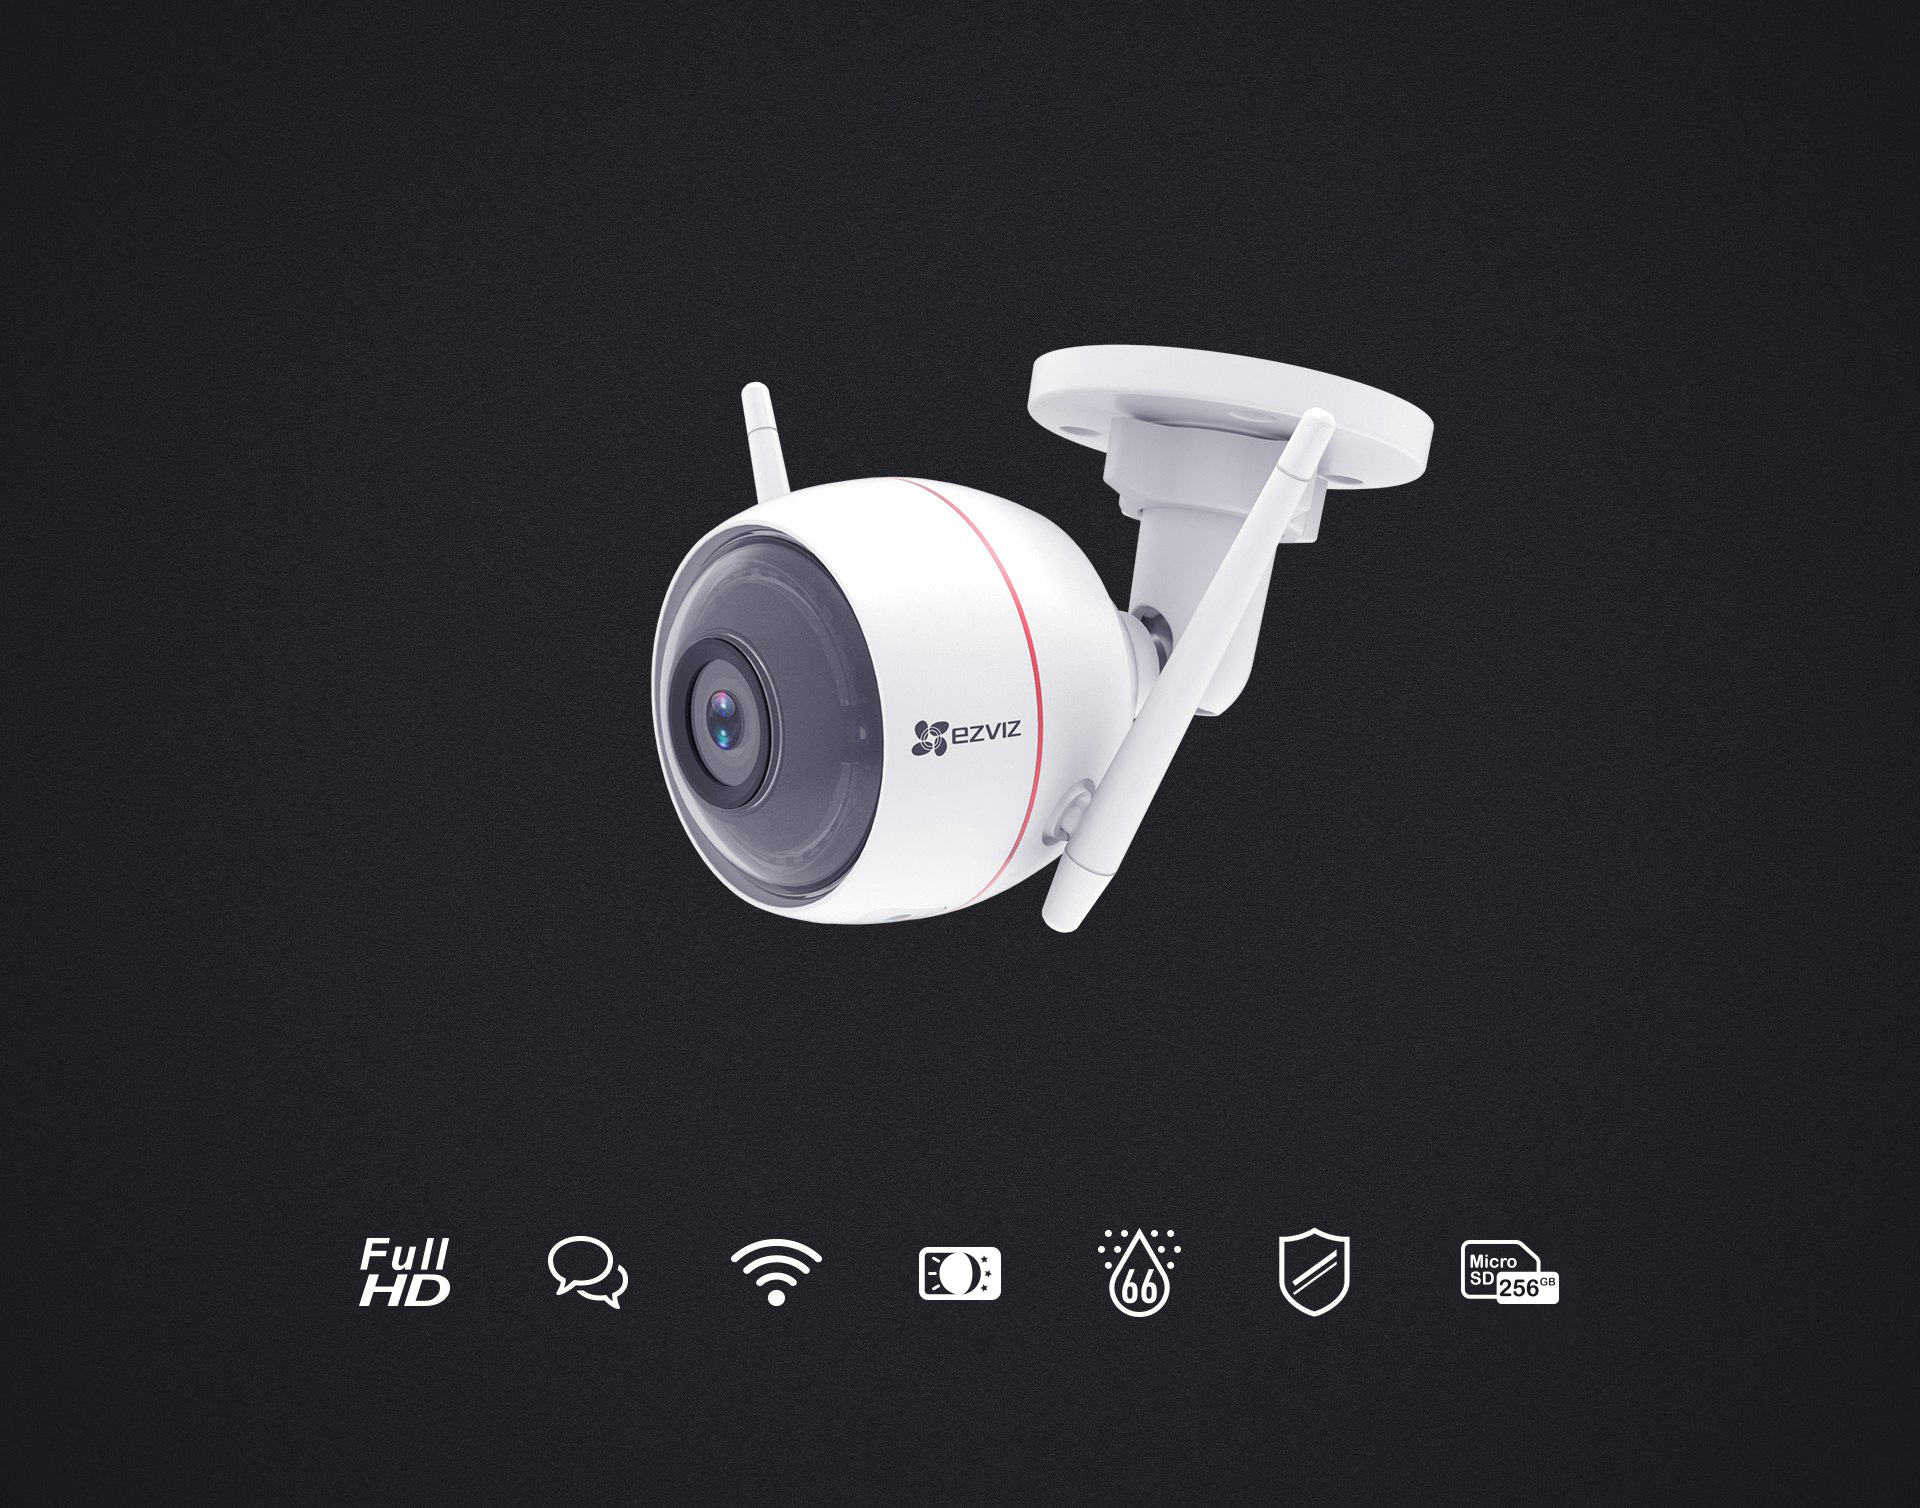 1f295f1517a C3W (ezGuard) - EZVIZ Wi-Fi Security Camera